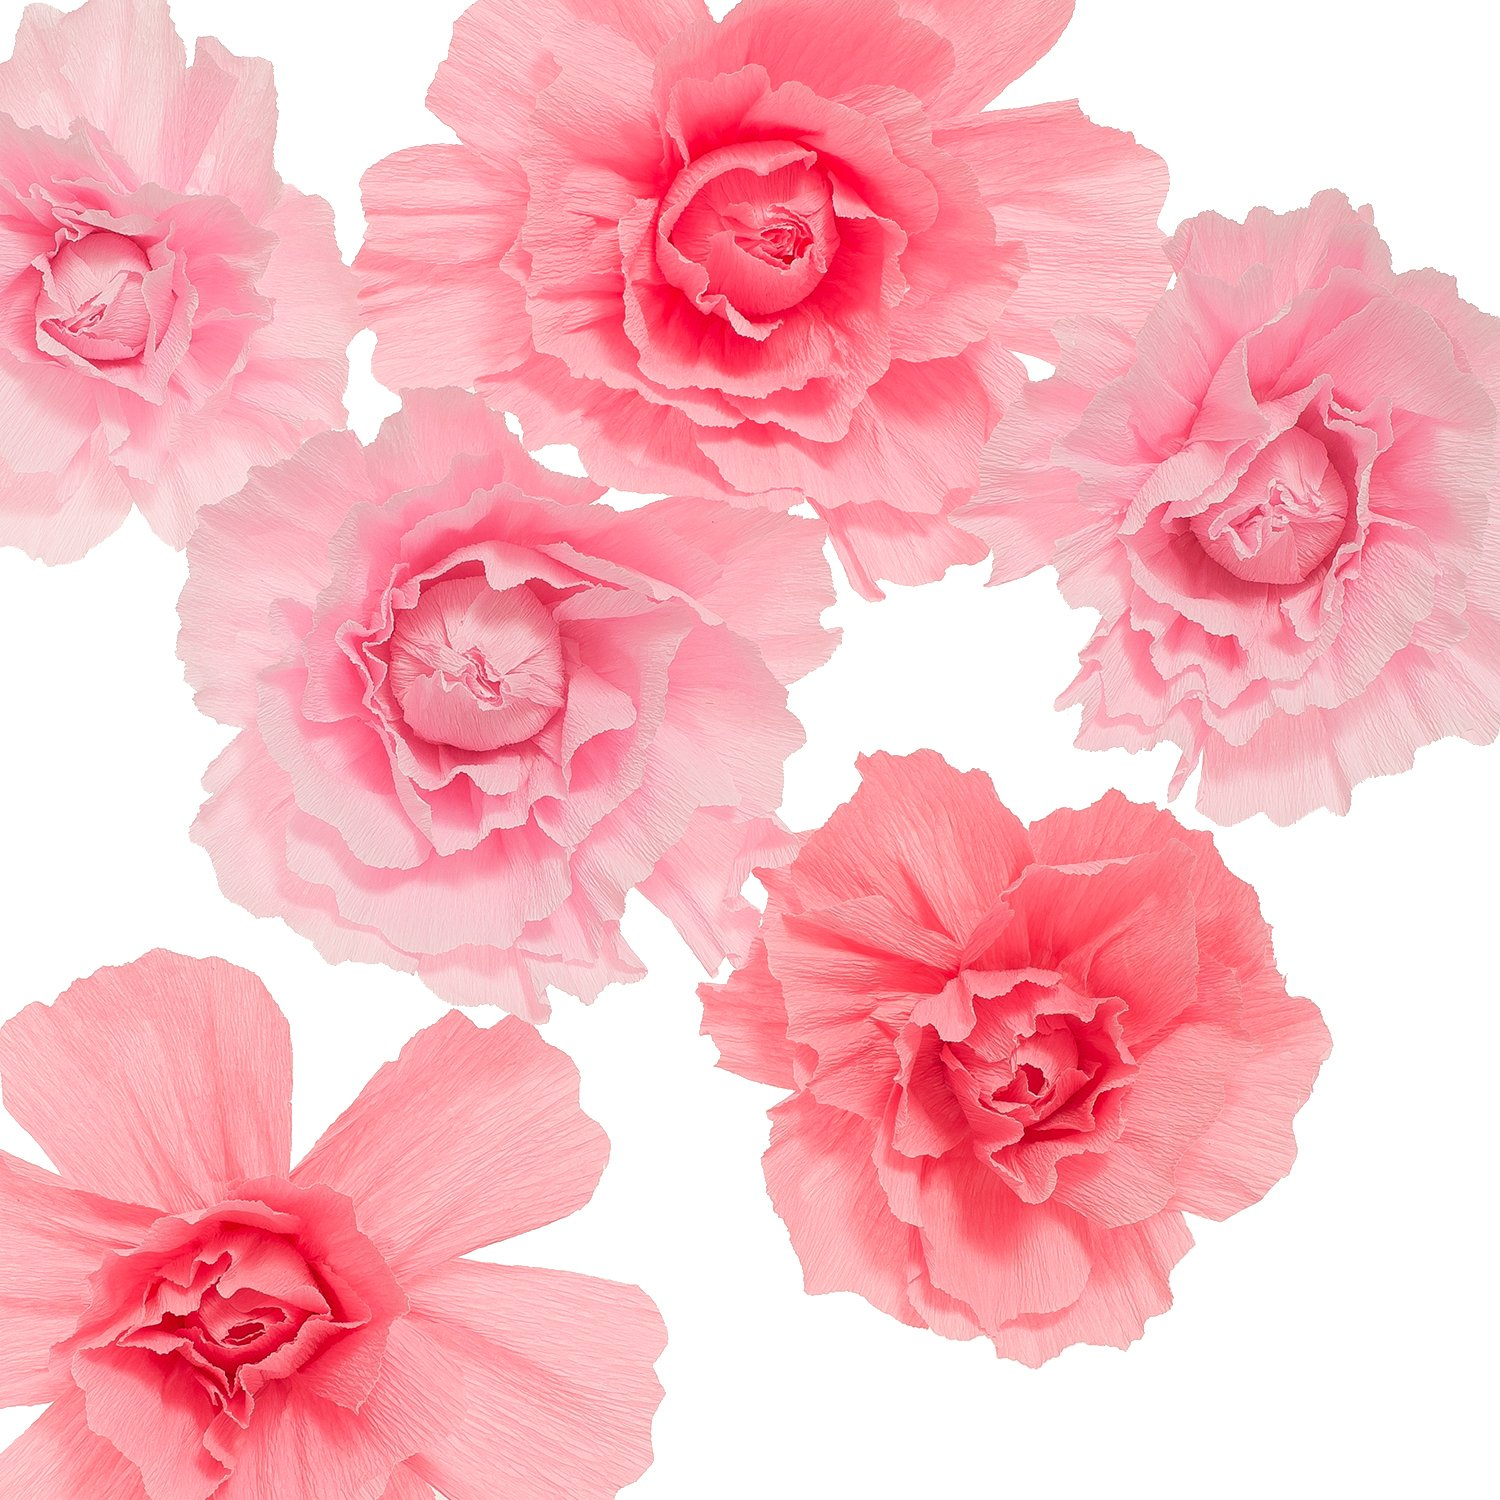 Cheap Flower Templates For Paper Flowers Find Flower Templates For